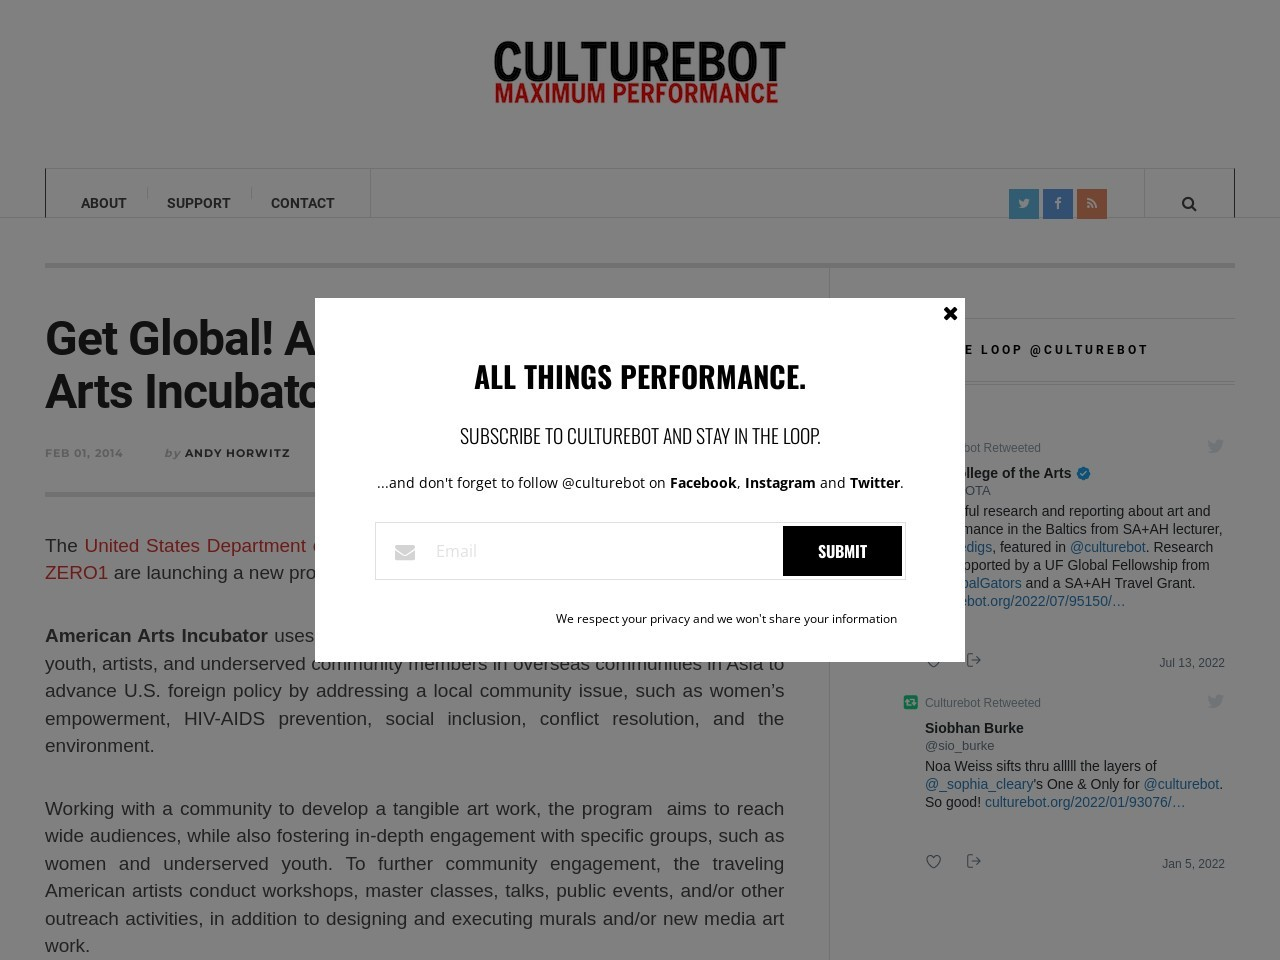 Culturebot | Get Global! Apply to the American Arts Incubator